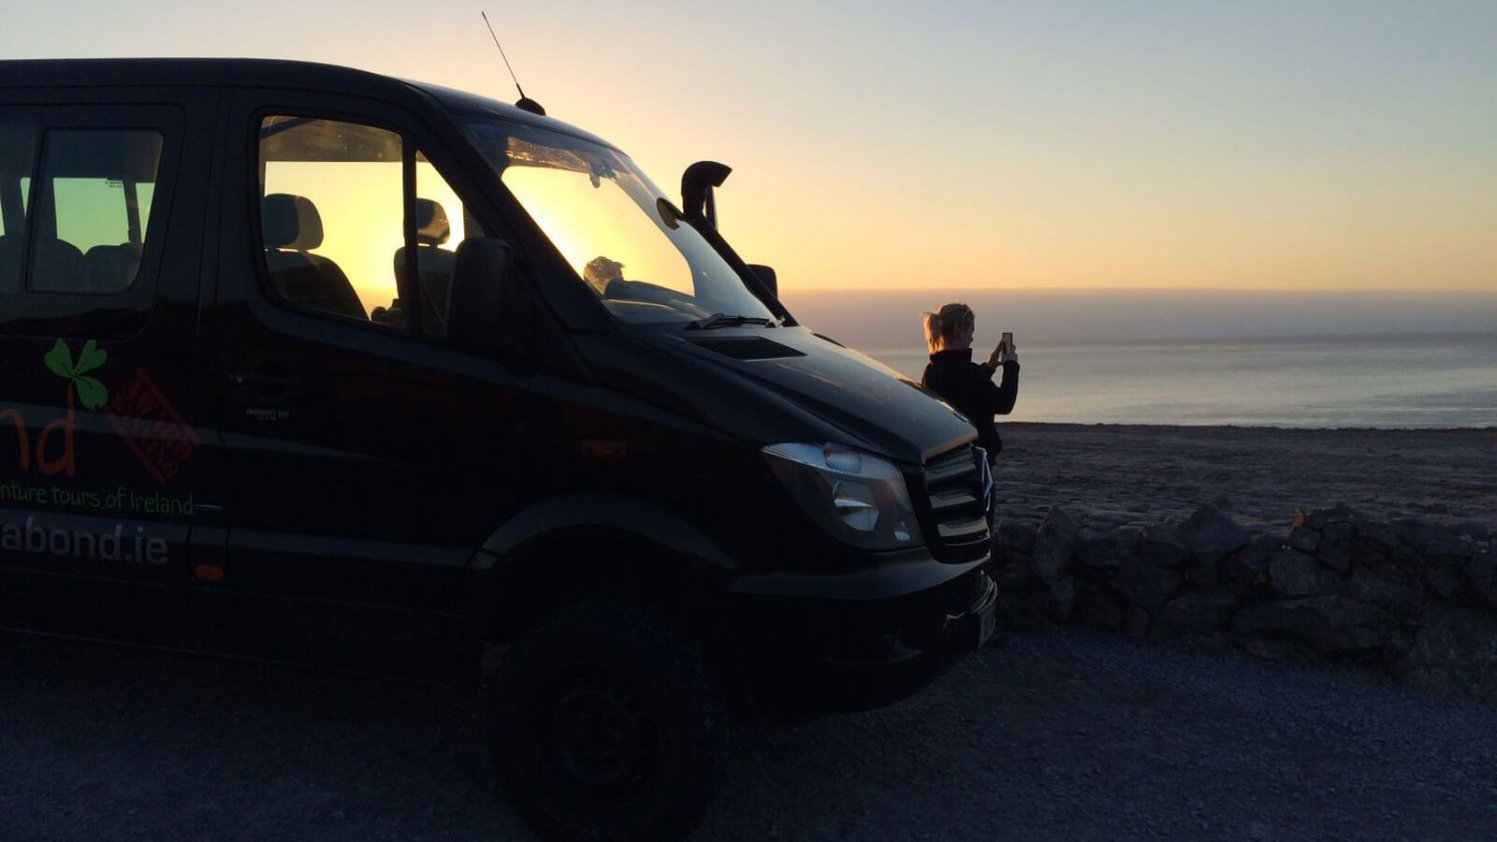 Vagatron tour vehicle with Vagabond tour guide, silhouette by the sun